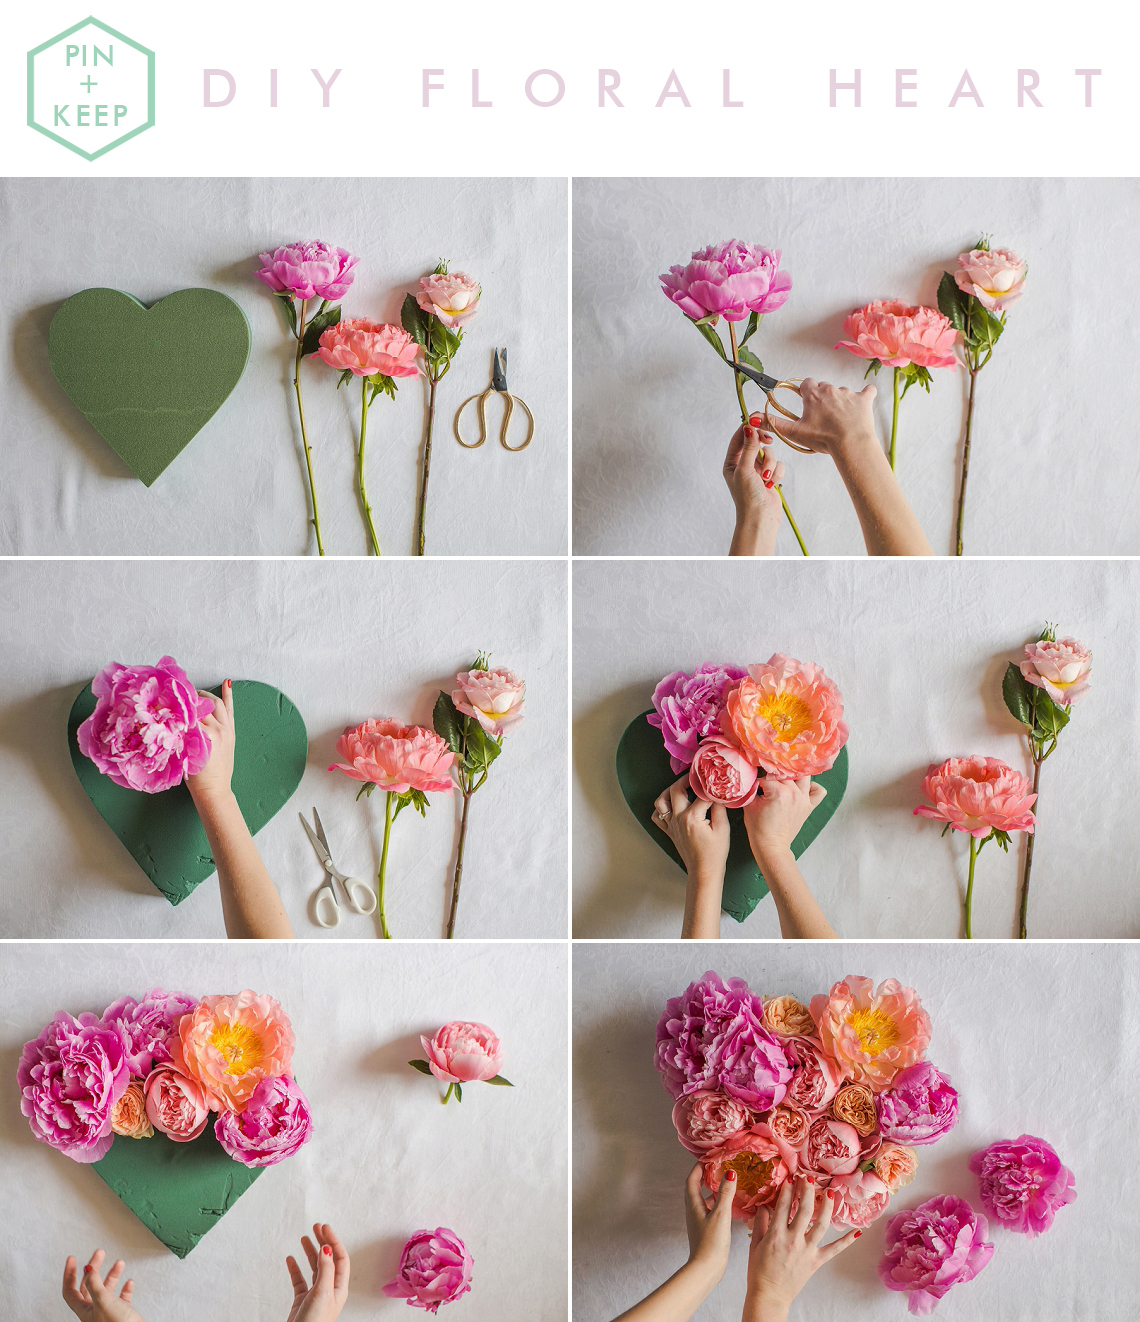 Fresh Floral Heart DIY with Roses & Peonies Tutorial